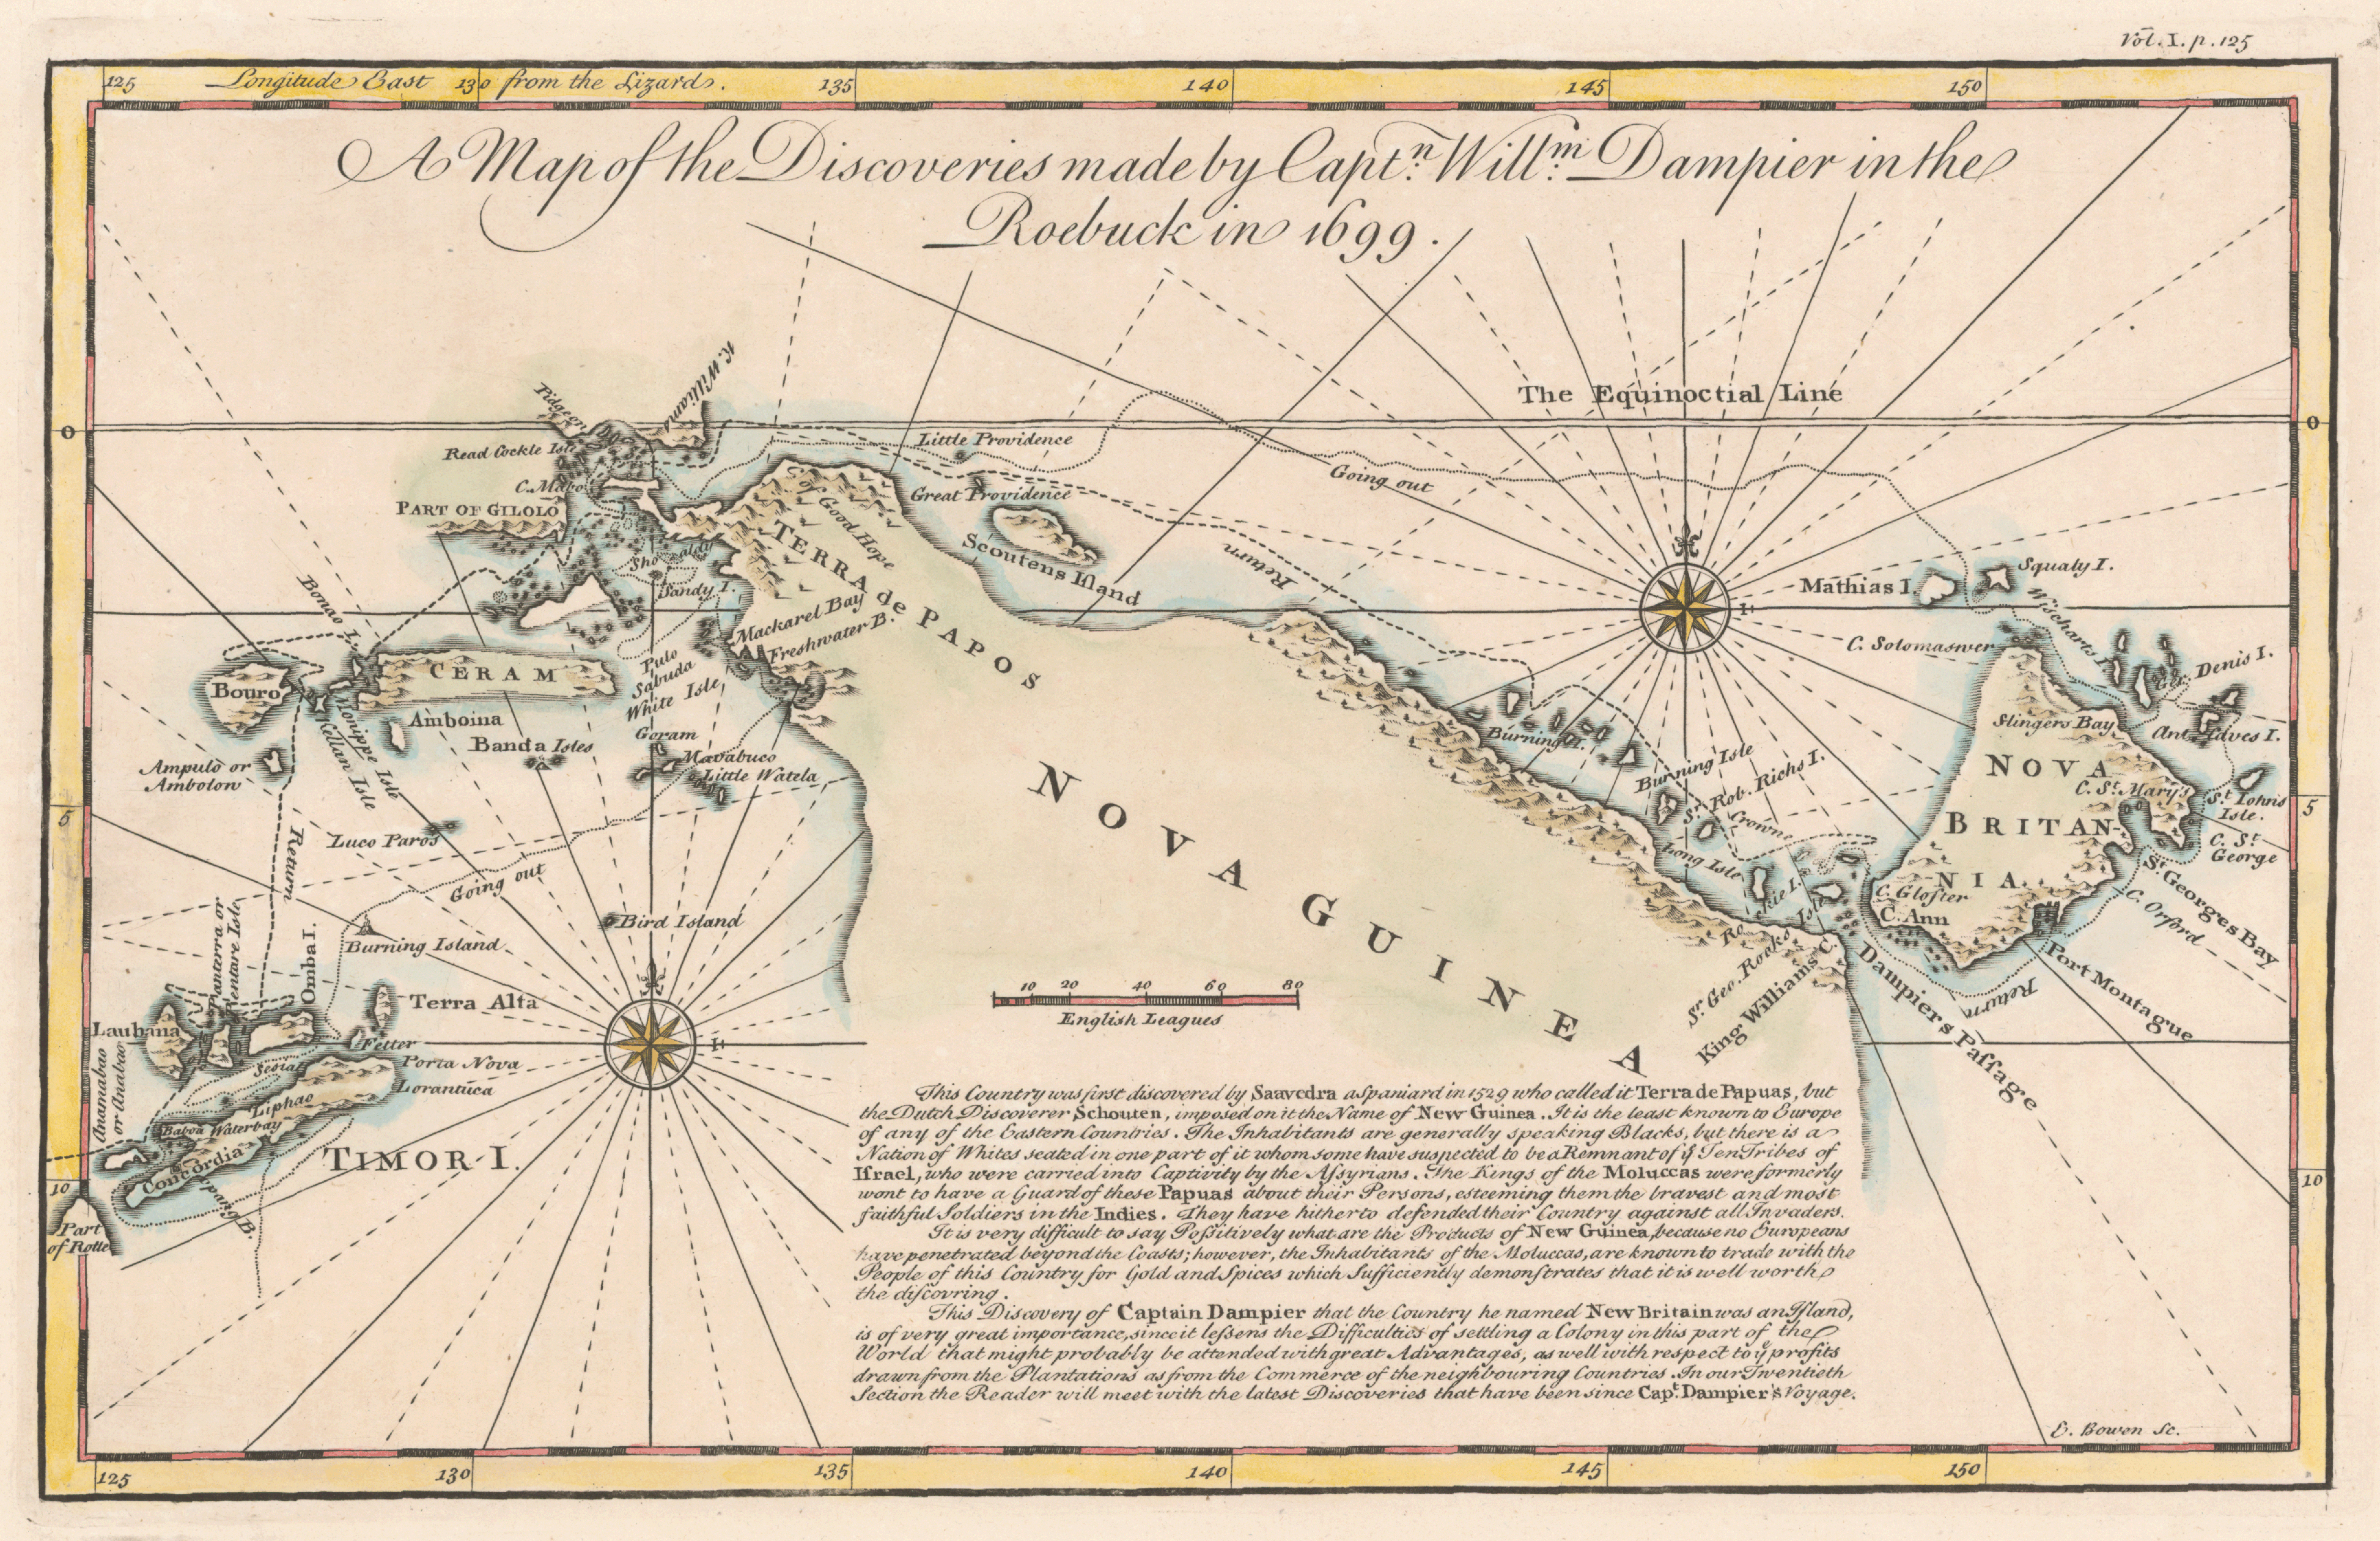 File:Map-dampier-roebuck-1699.jpg